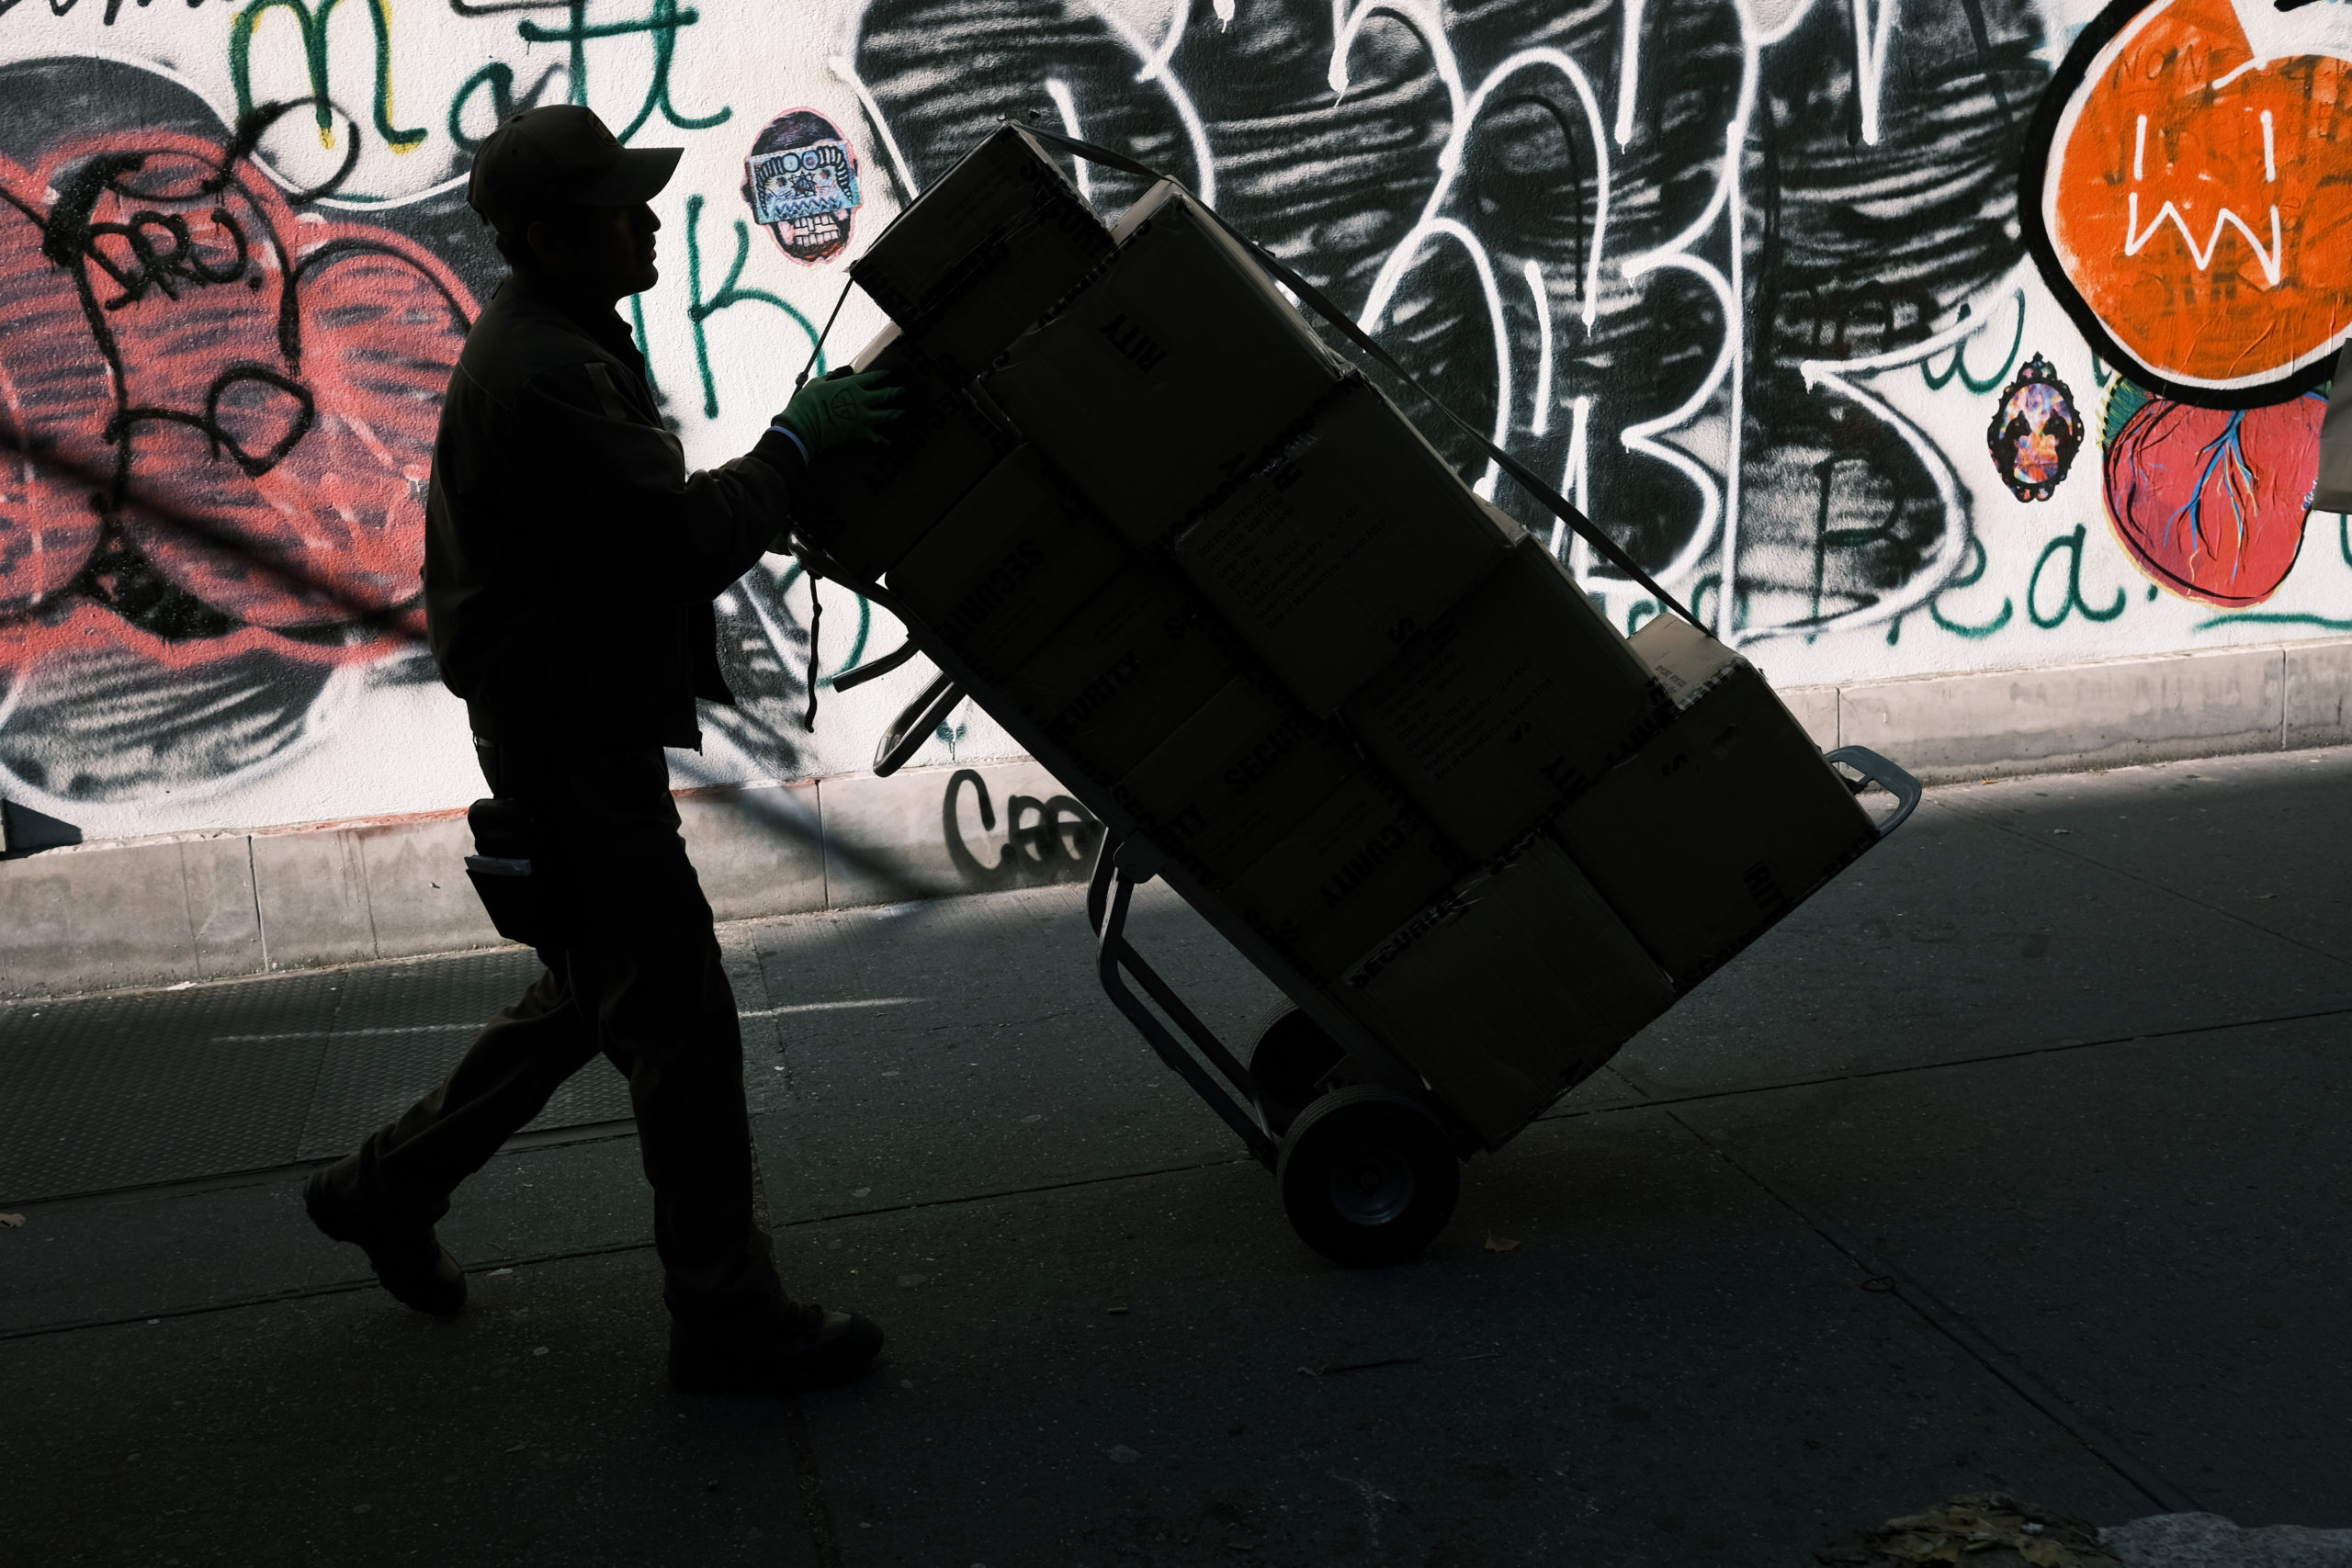 NEW YORK, NEW YORK - NOVEMBER 21: A man moves a box on November 21, 2019 in New York City. As the internet increasingly becomes peoples preferred method for shopping, many cities and towns are witnessing an increase in trucks making deliveries. It is estimated that more than 1.5million packages are delivered to New York City every day, causing truck gridlock, pollution and increased danger to cyclists and pedestrians. (Photo by Spencer Platt/Getty Images)